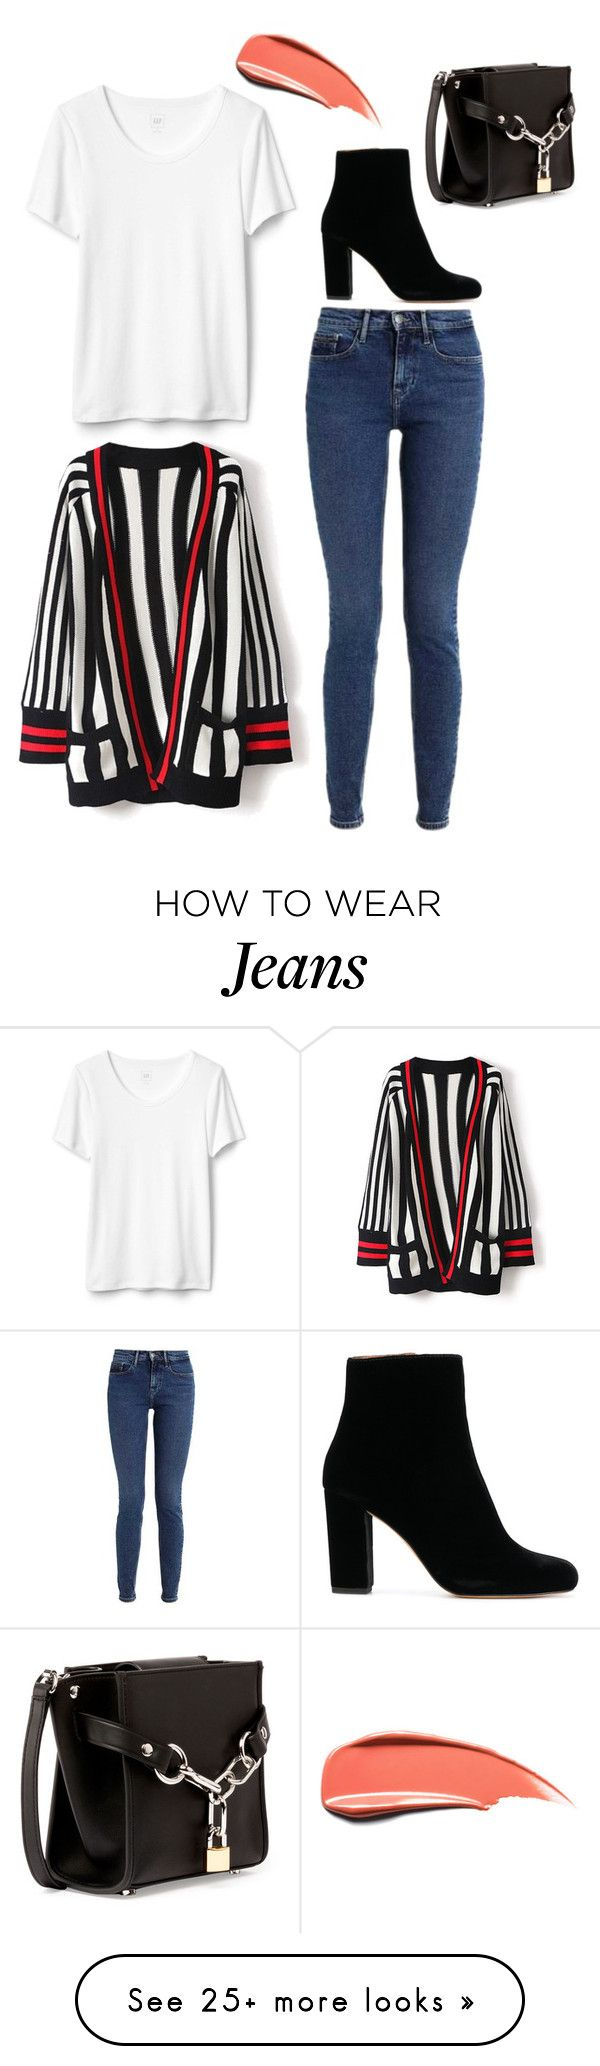 """""""#821"""" by anna-siegl on Polyvore featuring Calvin Klein, WithChic, IRO and Alexander Wang"""